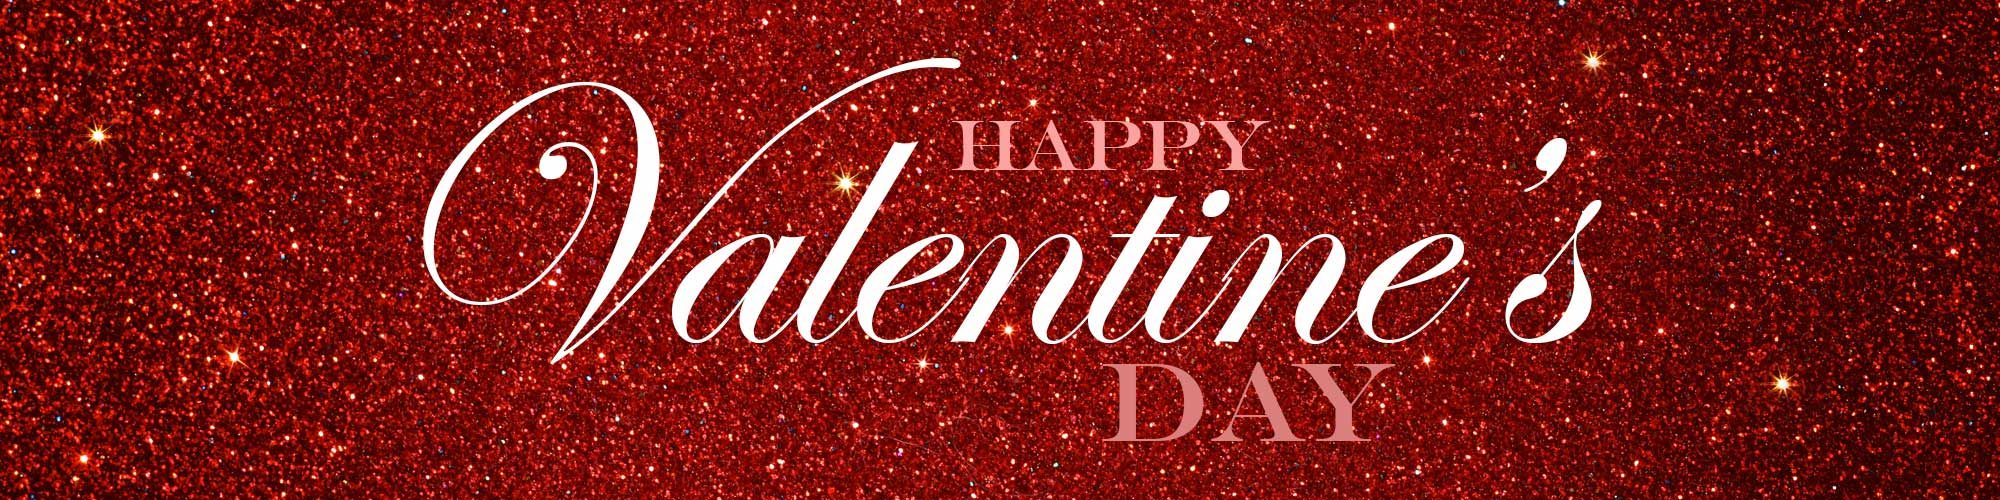 Happy Valentine's Day over Red Sparkle Background